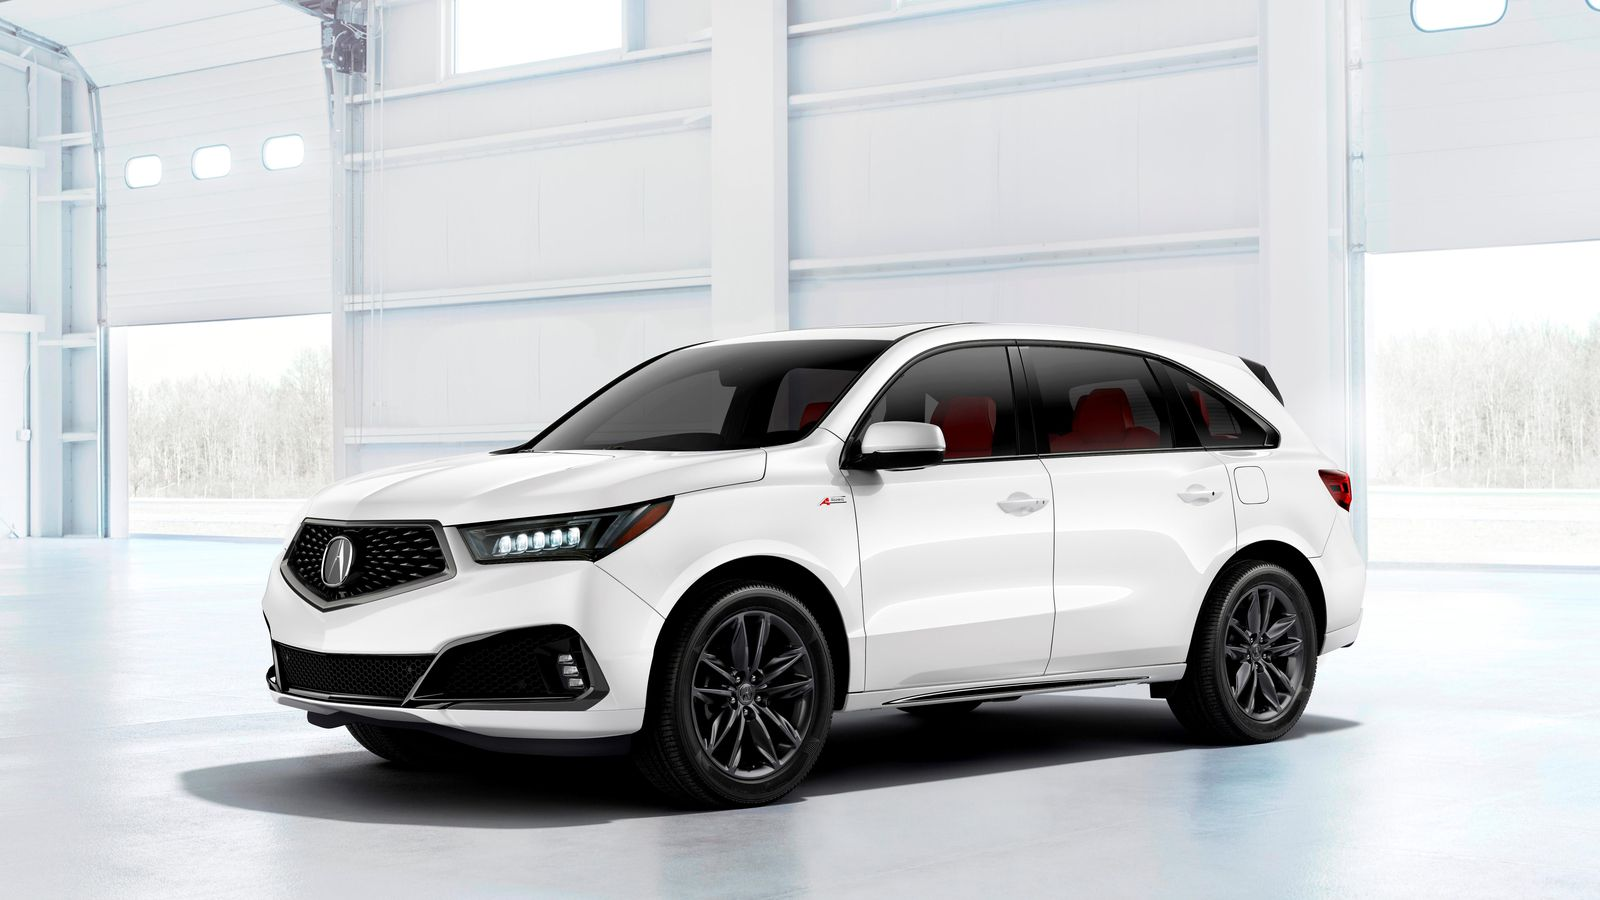 38 The Best 2019 Acura Mdx Rumors Spesification